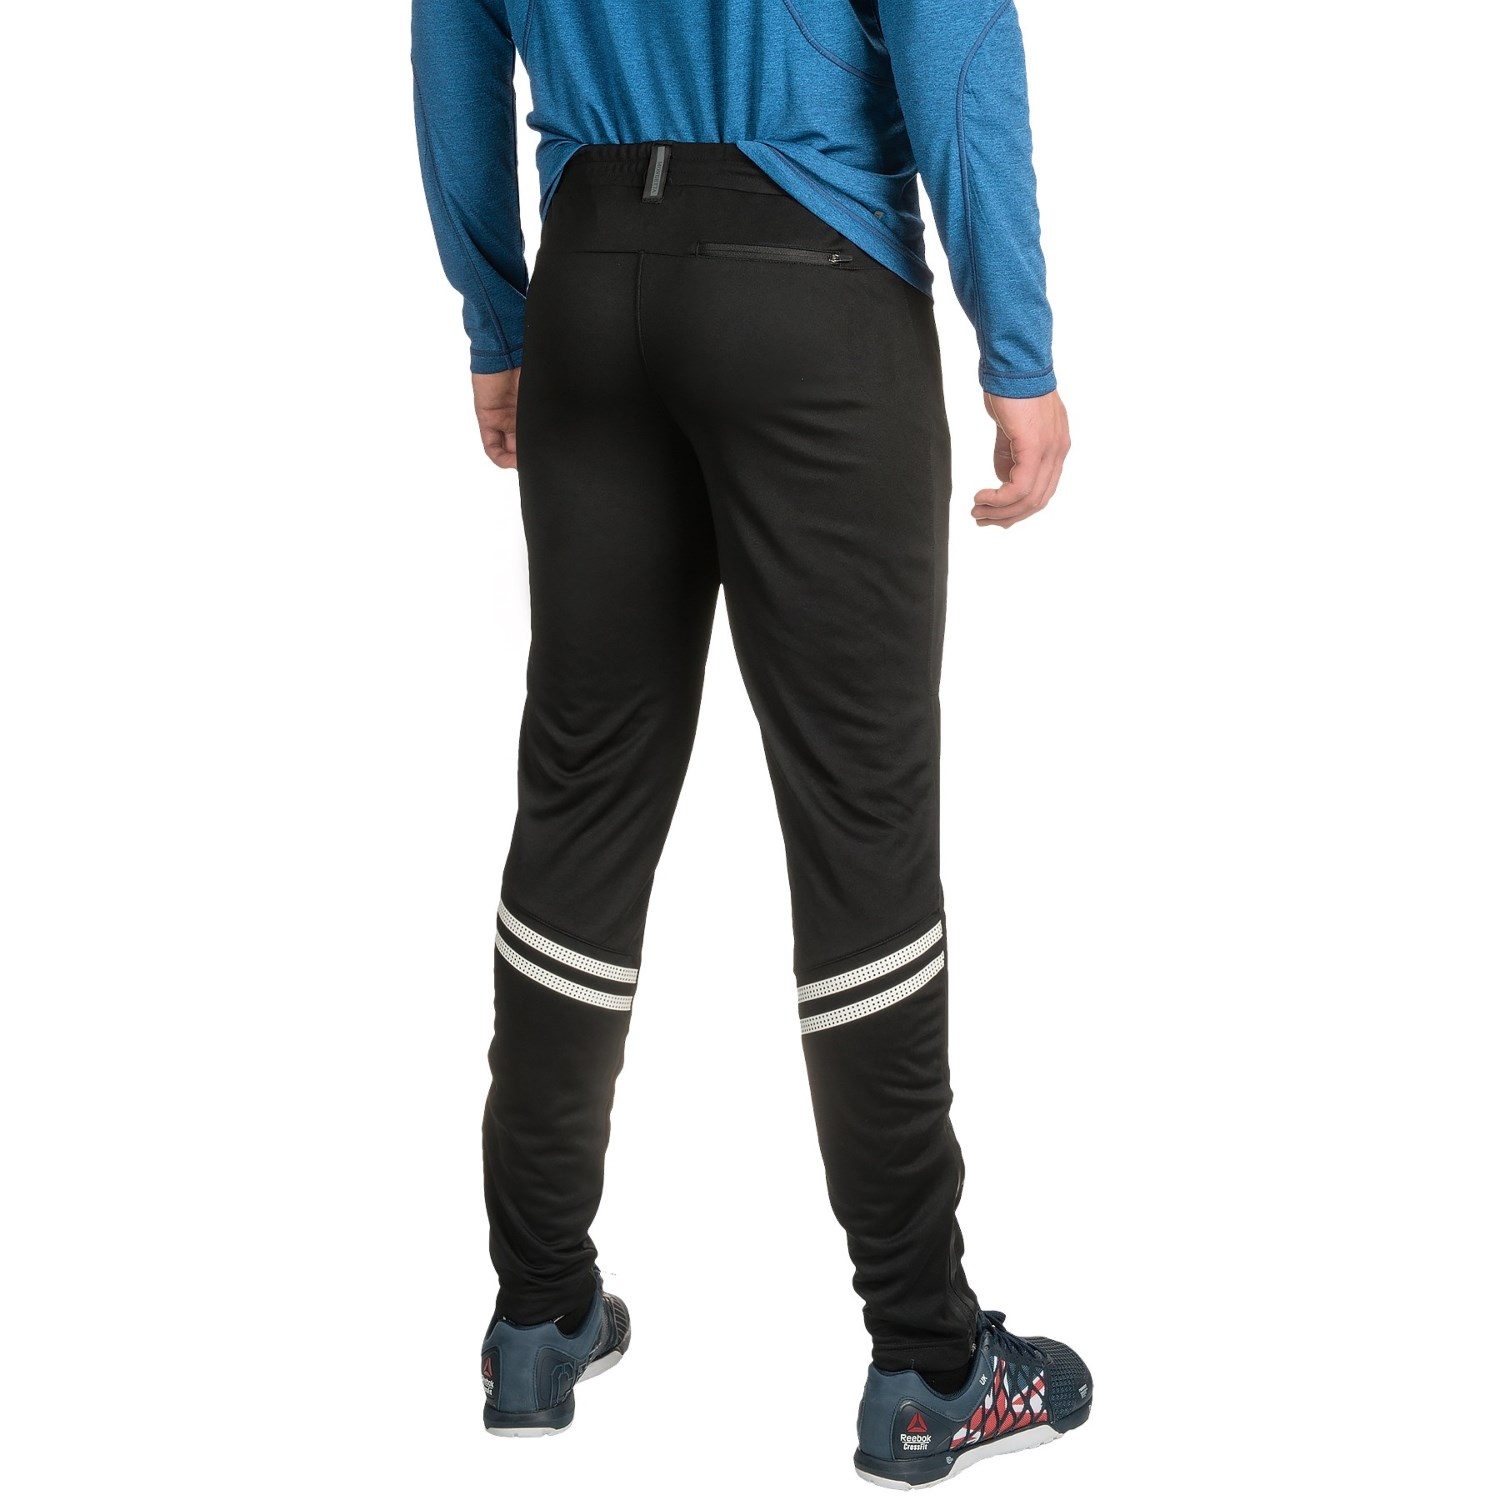 Shop adidas Men's Tiro ClimaLite® Slim Soccer Pants online at downiloadojg.gq Warm up in cool comfort with these adidas soccer pants. The slim fit features mesh at the back for added ventilation, while ClimaLite® fabric helps keep you dry. Ankle zips let you transition quickly to game action.